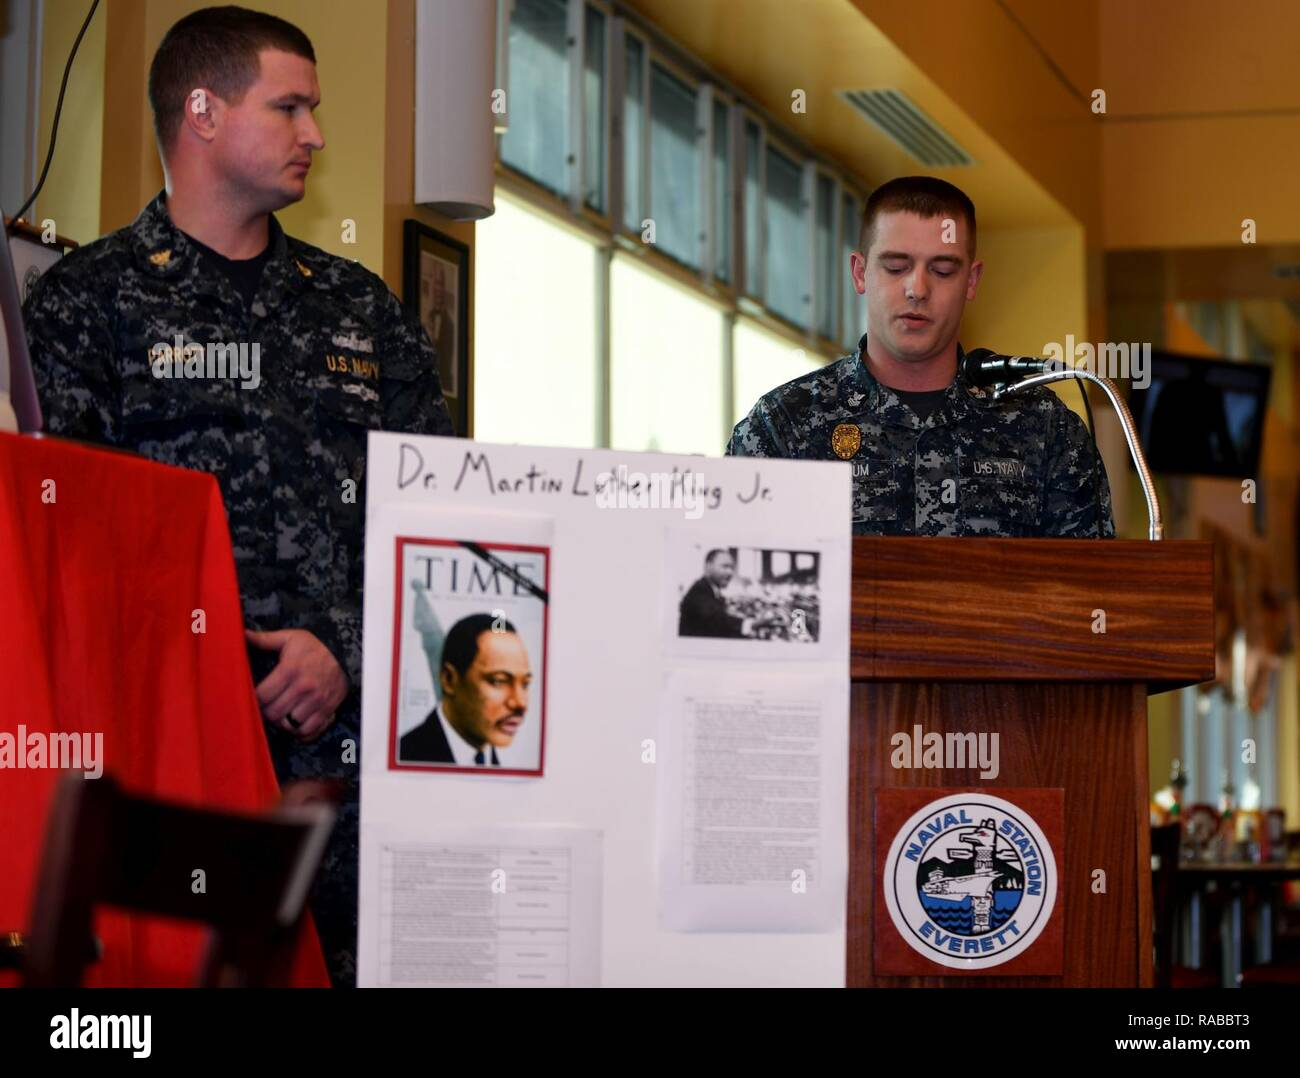 EVERETT, Wash. (Jan. 13, 2017)  Master-at-Arms 1st Class John Winjum, assigned to Naval Station Everett (NSE) Security Forces, speaks at a Martin Luther King Jr. Day remembrance ceremony in NSE All-American Restaurant Jan. 13. Dr. King was a civil rights activist who worked to end racial segregation in the United States. - Stock Image